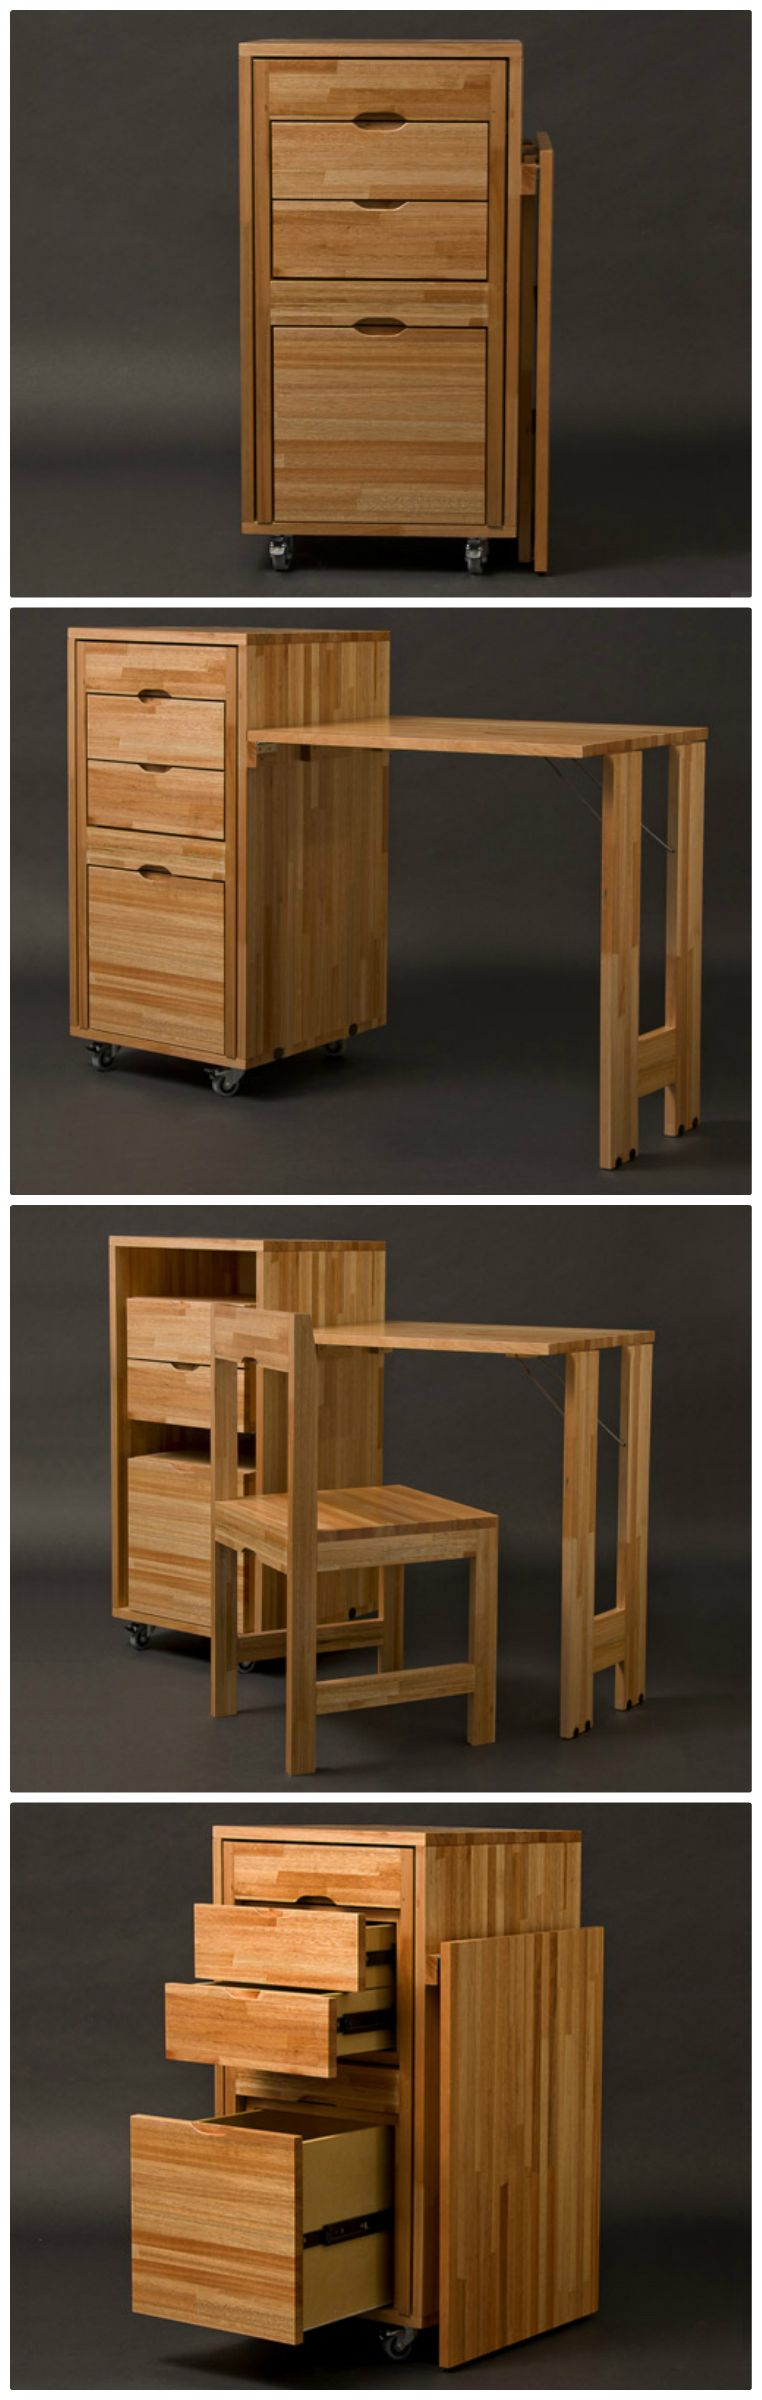 Muebles De Madera Multifuncionales Transforming Cabinet With Hidden Table And Chairs From Claudio